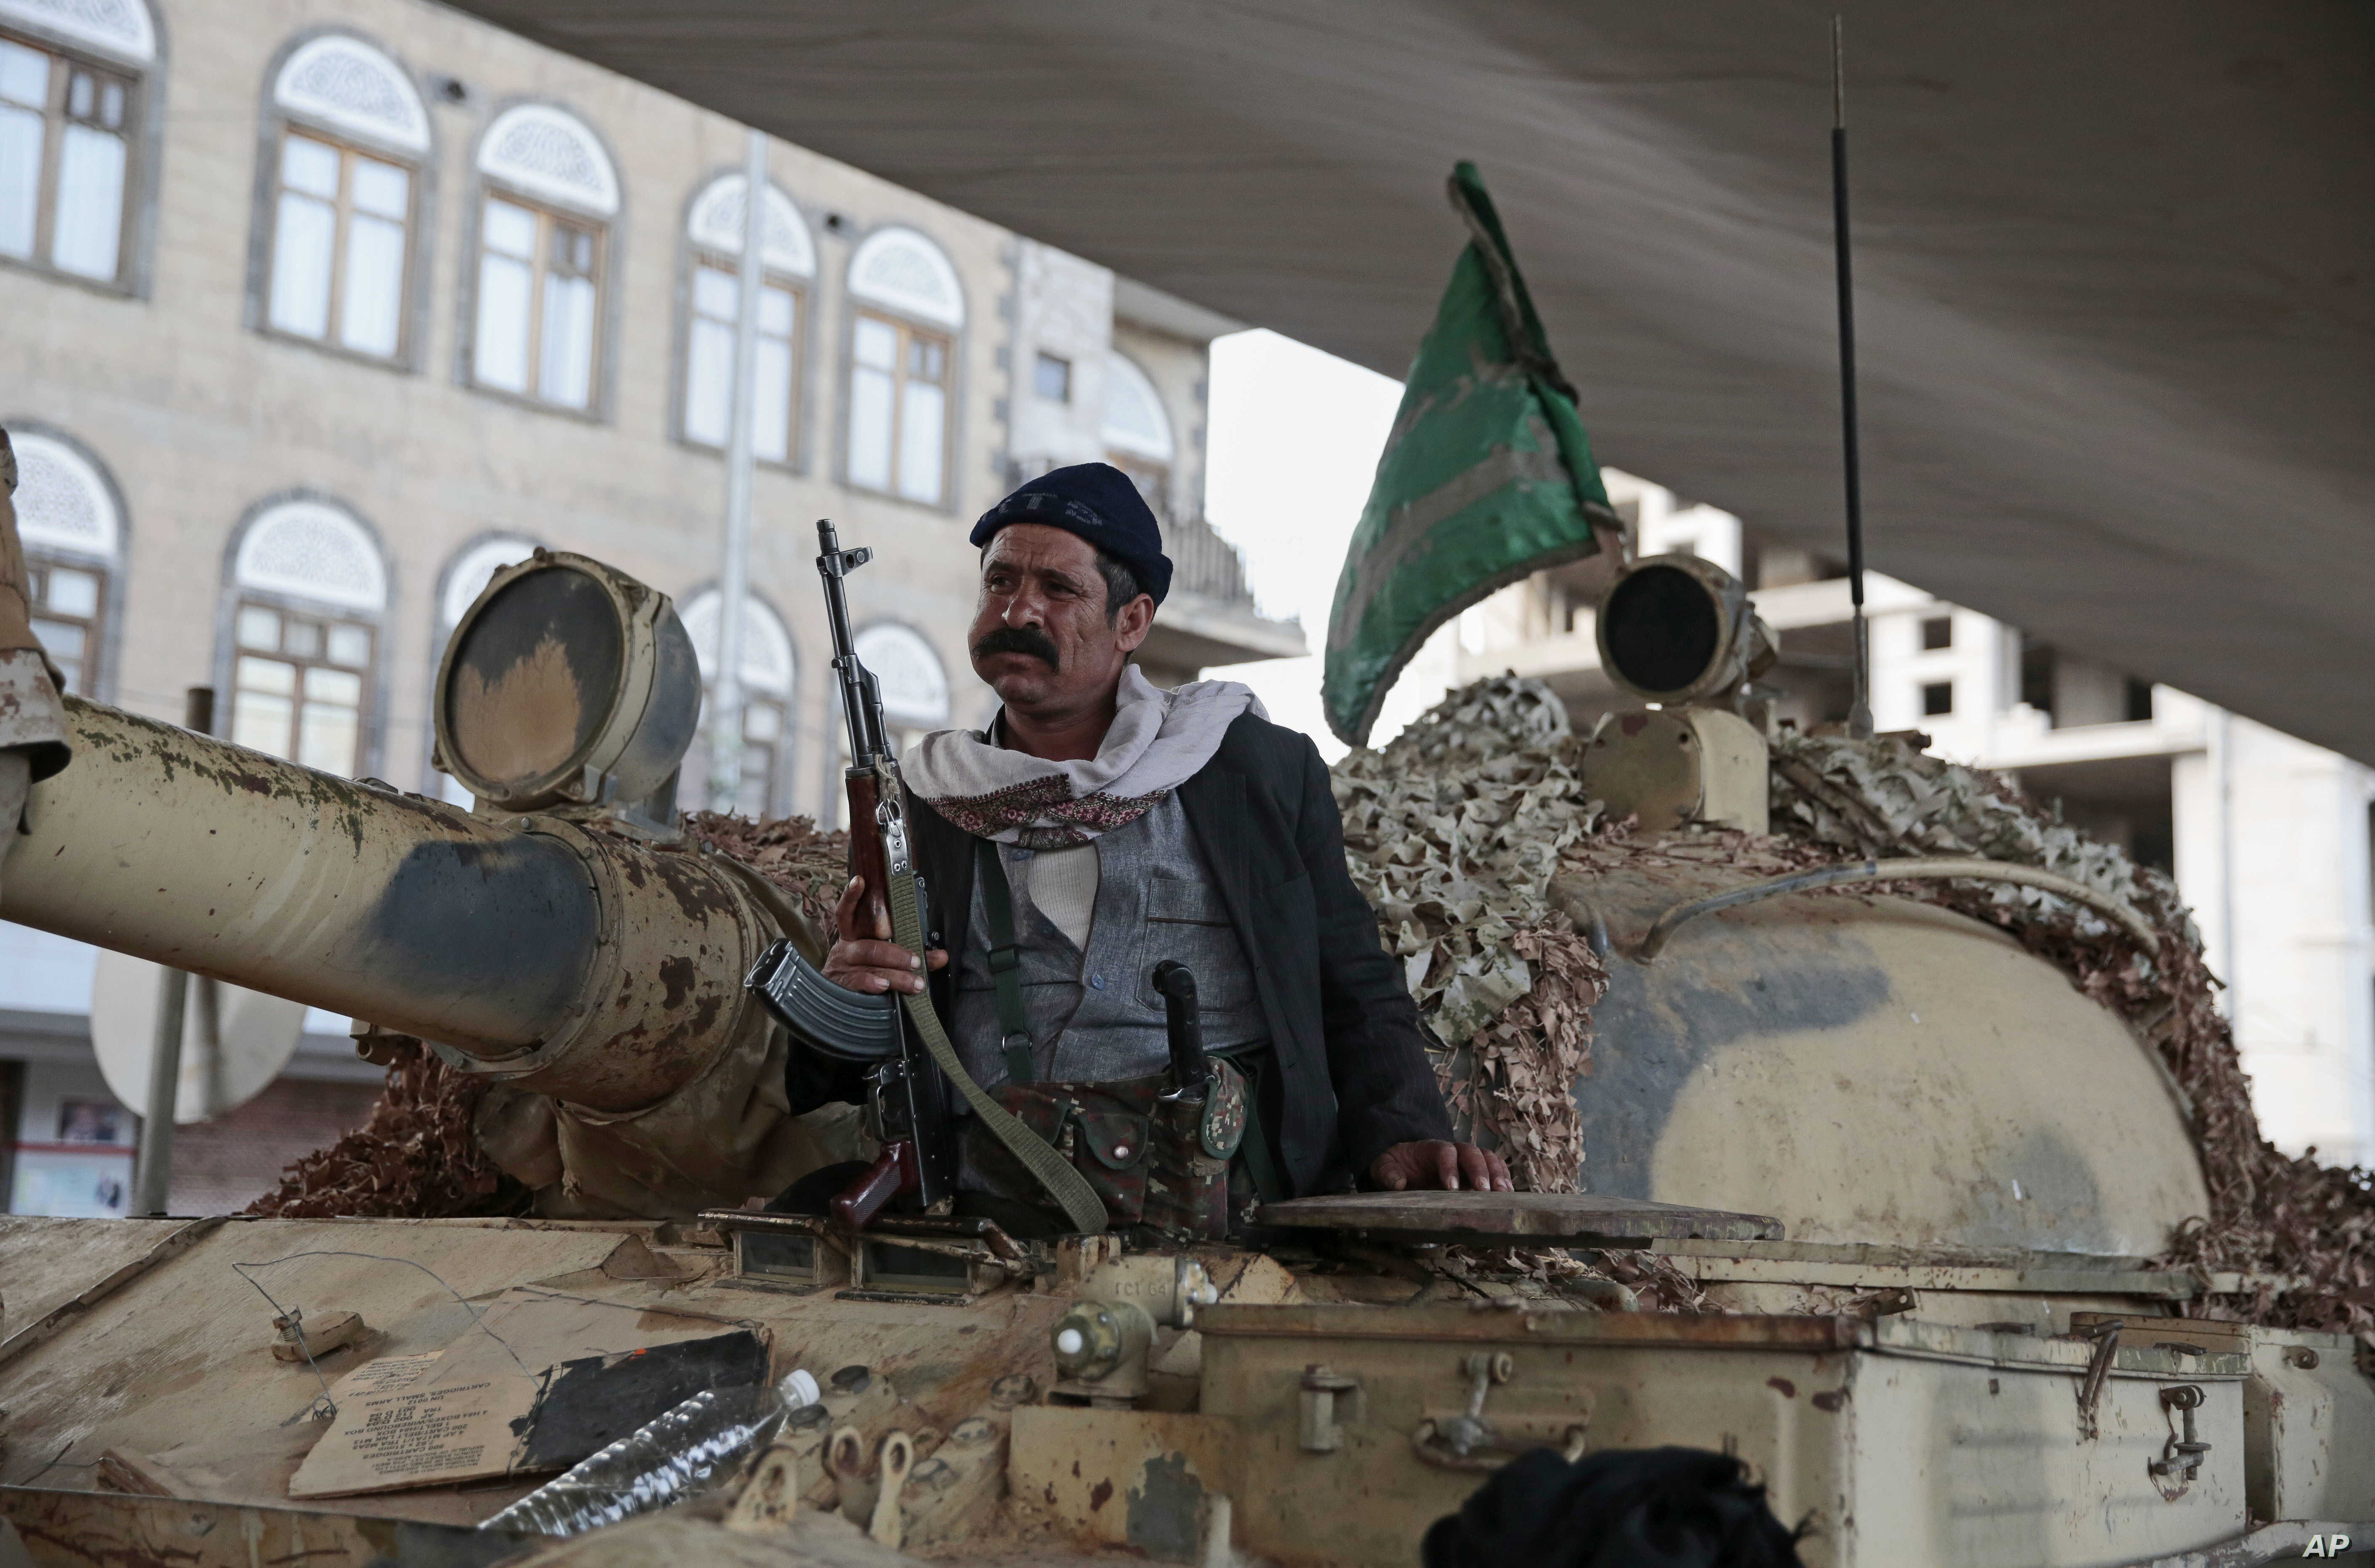 A Houthi Shi'ite fighter guards a street leading to the residence of former President Ali Abdullah Saleh, in Sana'a, Yemen, Dec. 4, 2017.